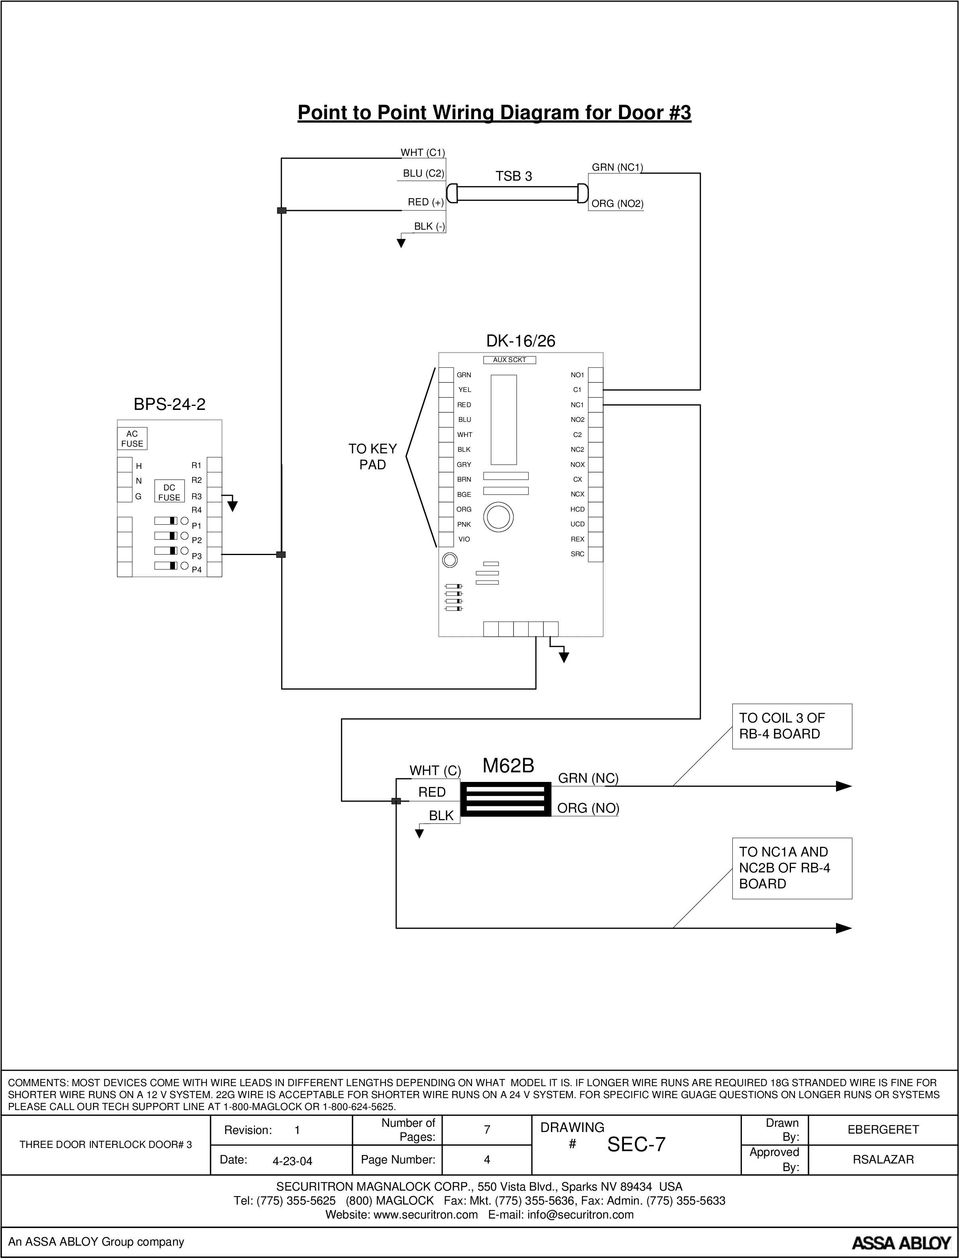 hight resolution of to 1a ad 2b of rb 4 board commets most devices come wit wire